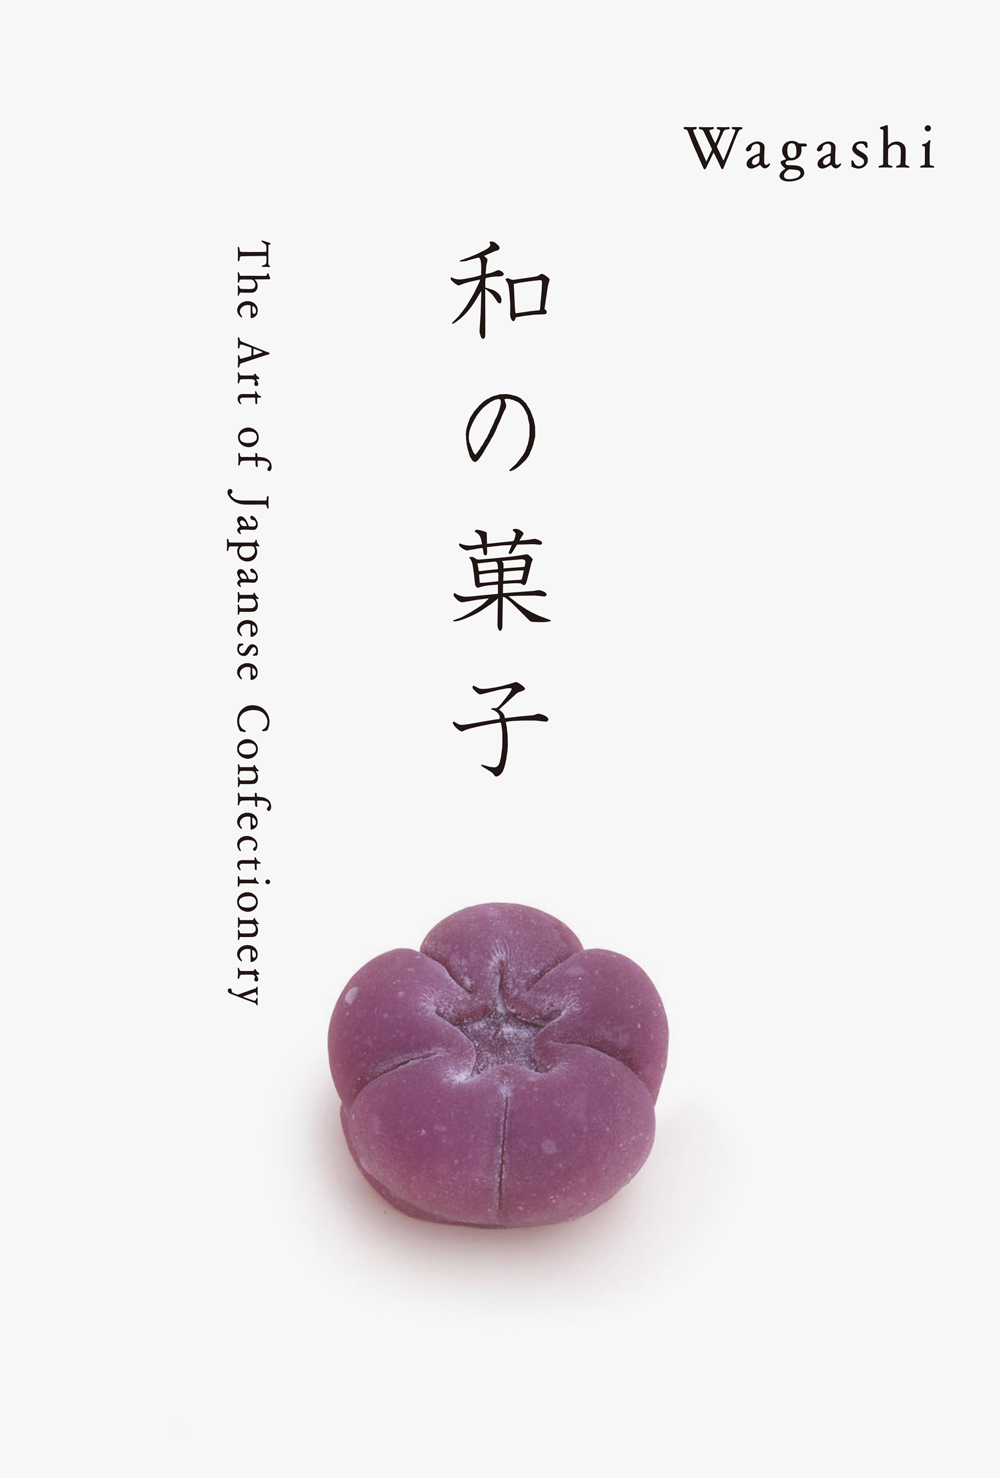 WAGASHI : The Art of Japanese Confectionery